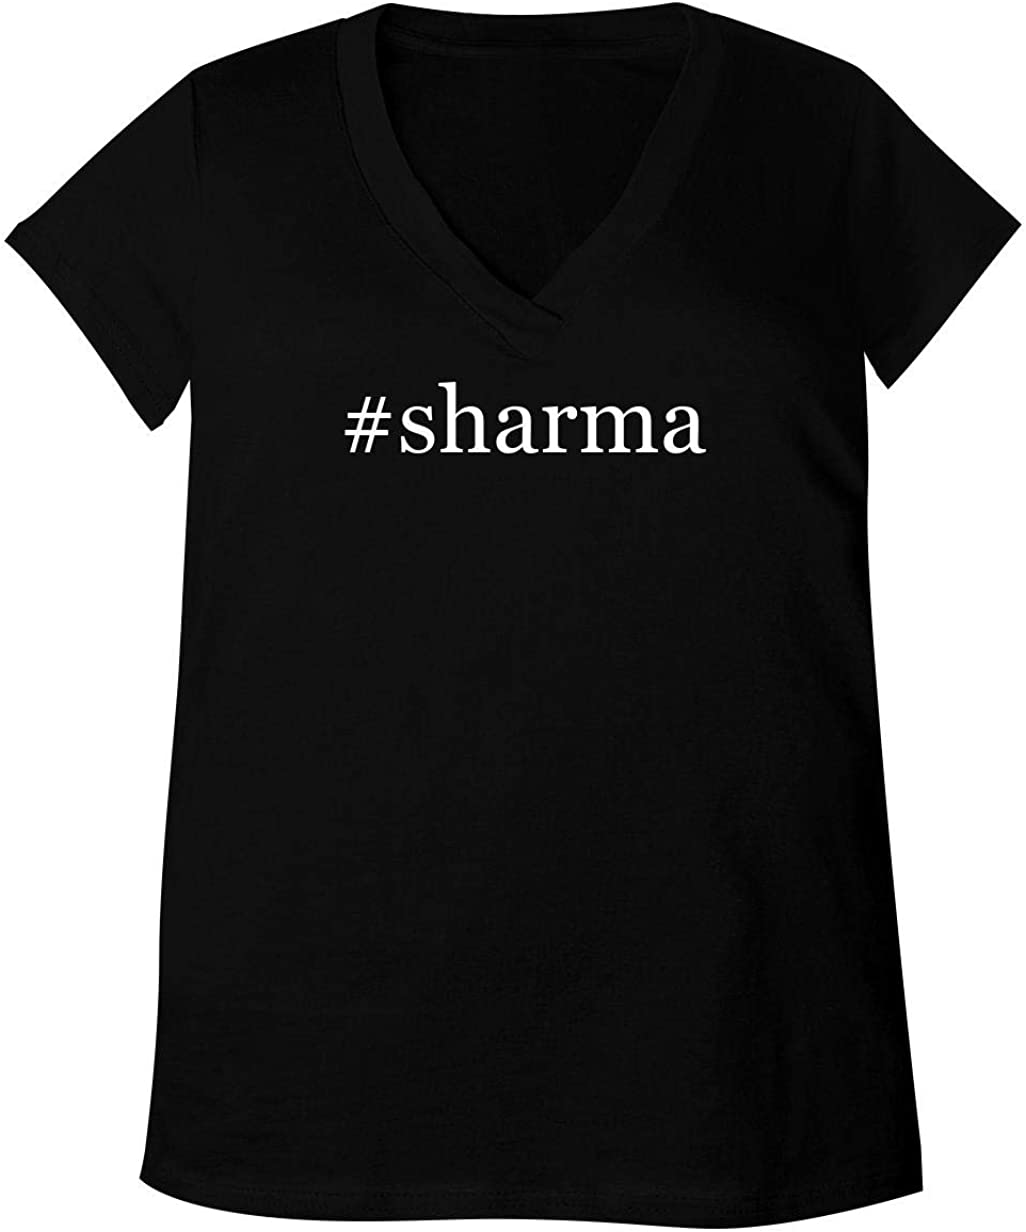 B07T3XSCQN #Sharma - Adult Bella + Canvas B6035 Women's V-Neck T-Shirt 51MpQa8hHeL